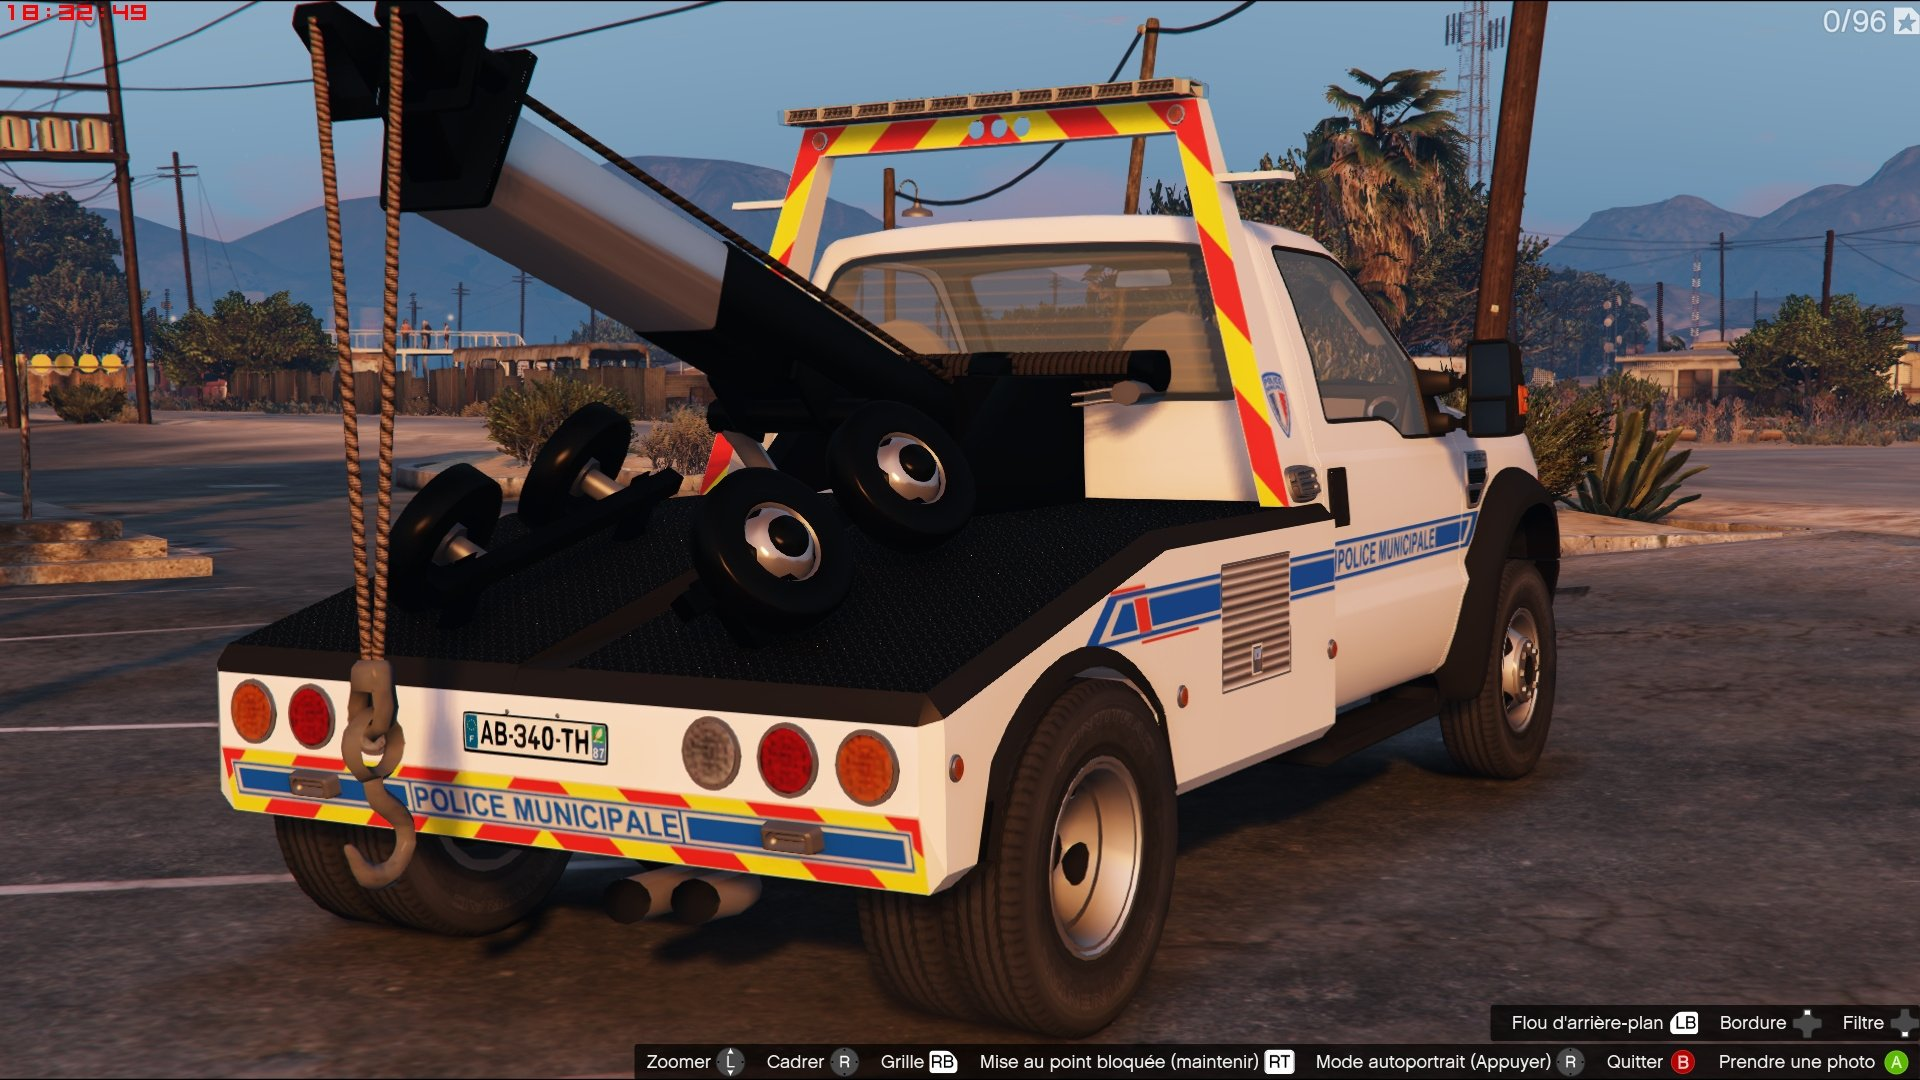 Ford F-550 Towtruck French Police Municipale [ELS] - GTA5